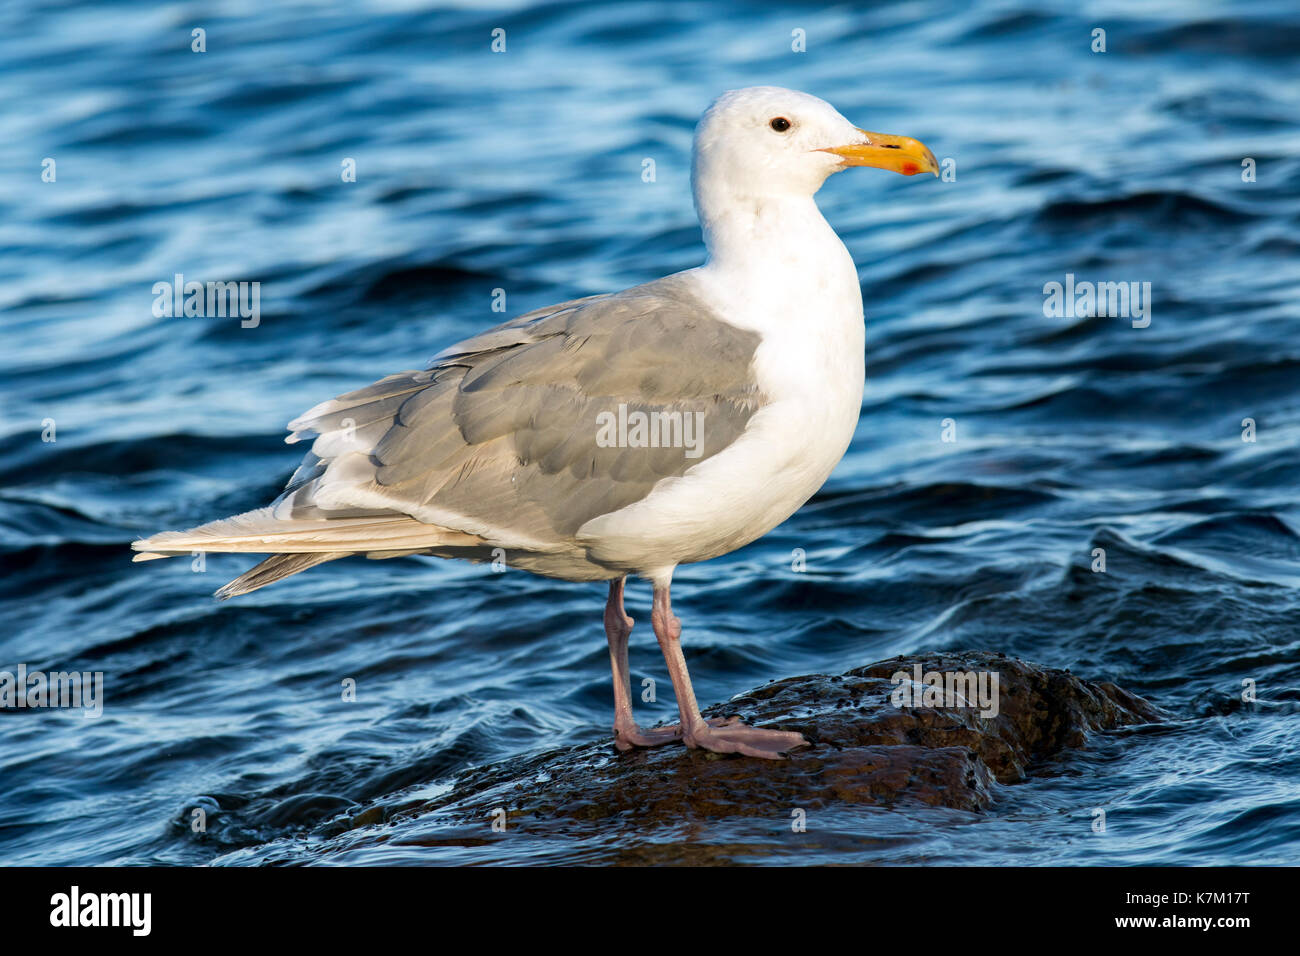 Glaucous-winged Gull (Larus glaucescens) - Cattle Point, Uplands Park, Oak Bay, Victoria, Vancouver Island, British Columbia, Canada - Stock Image